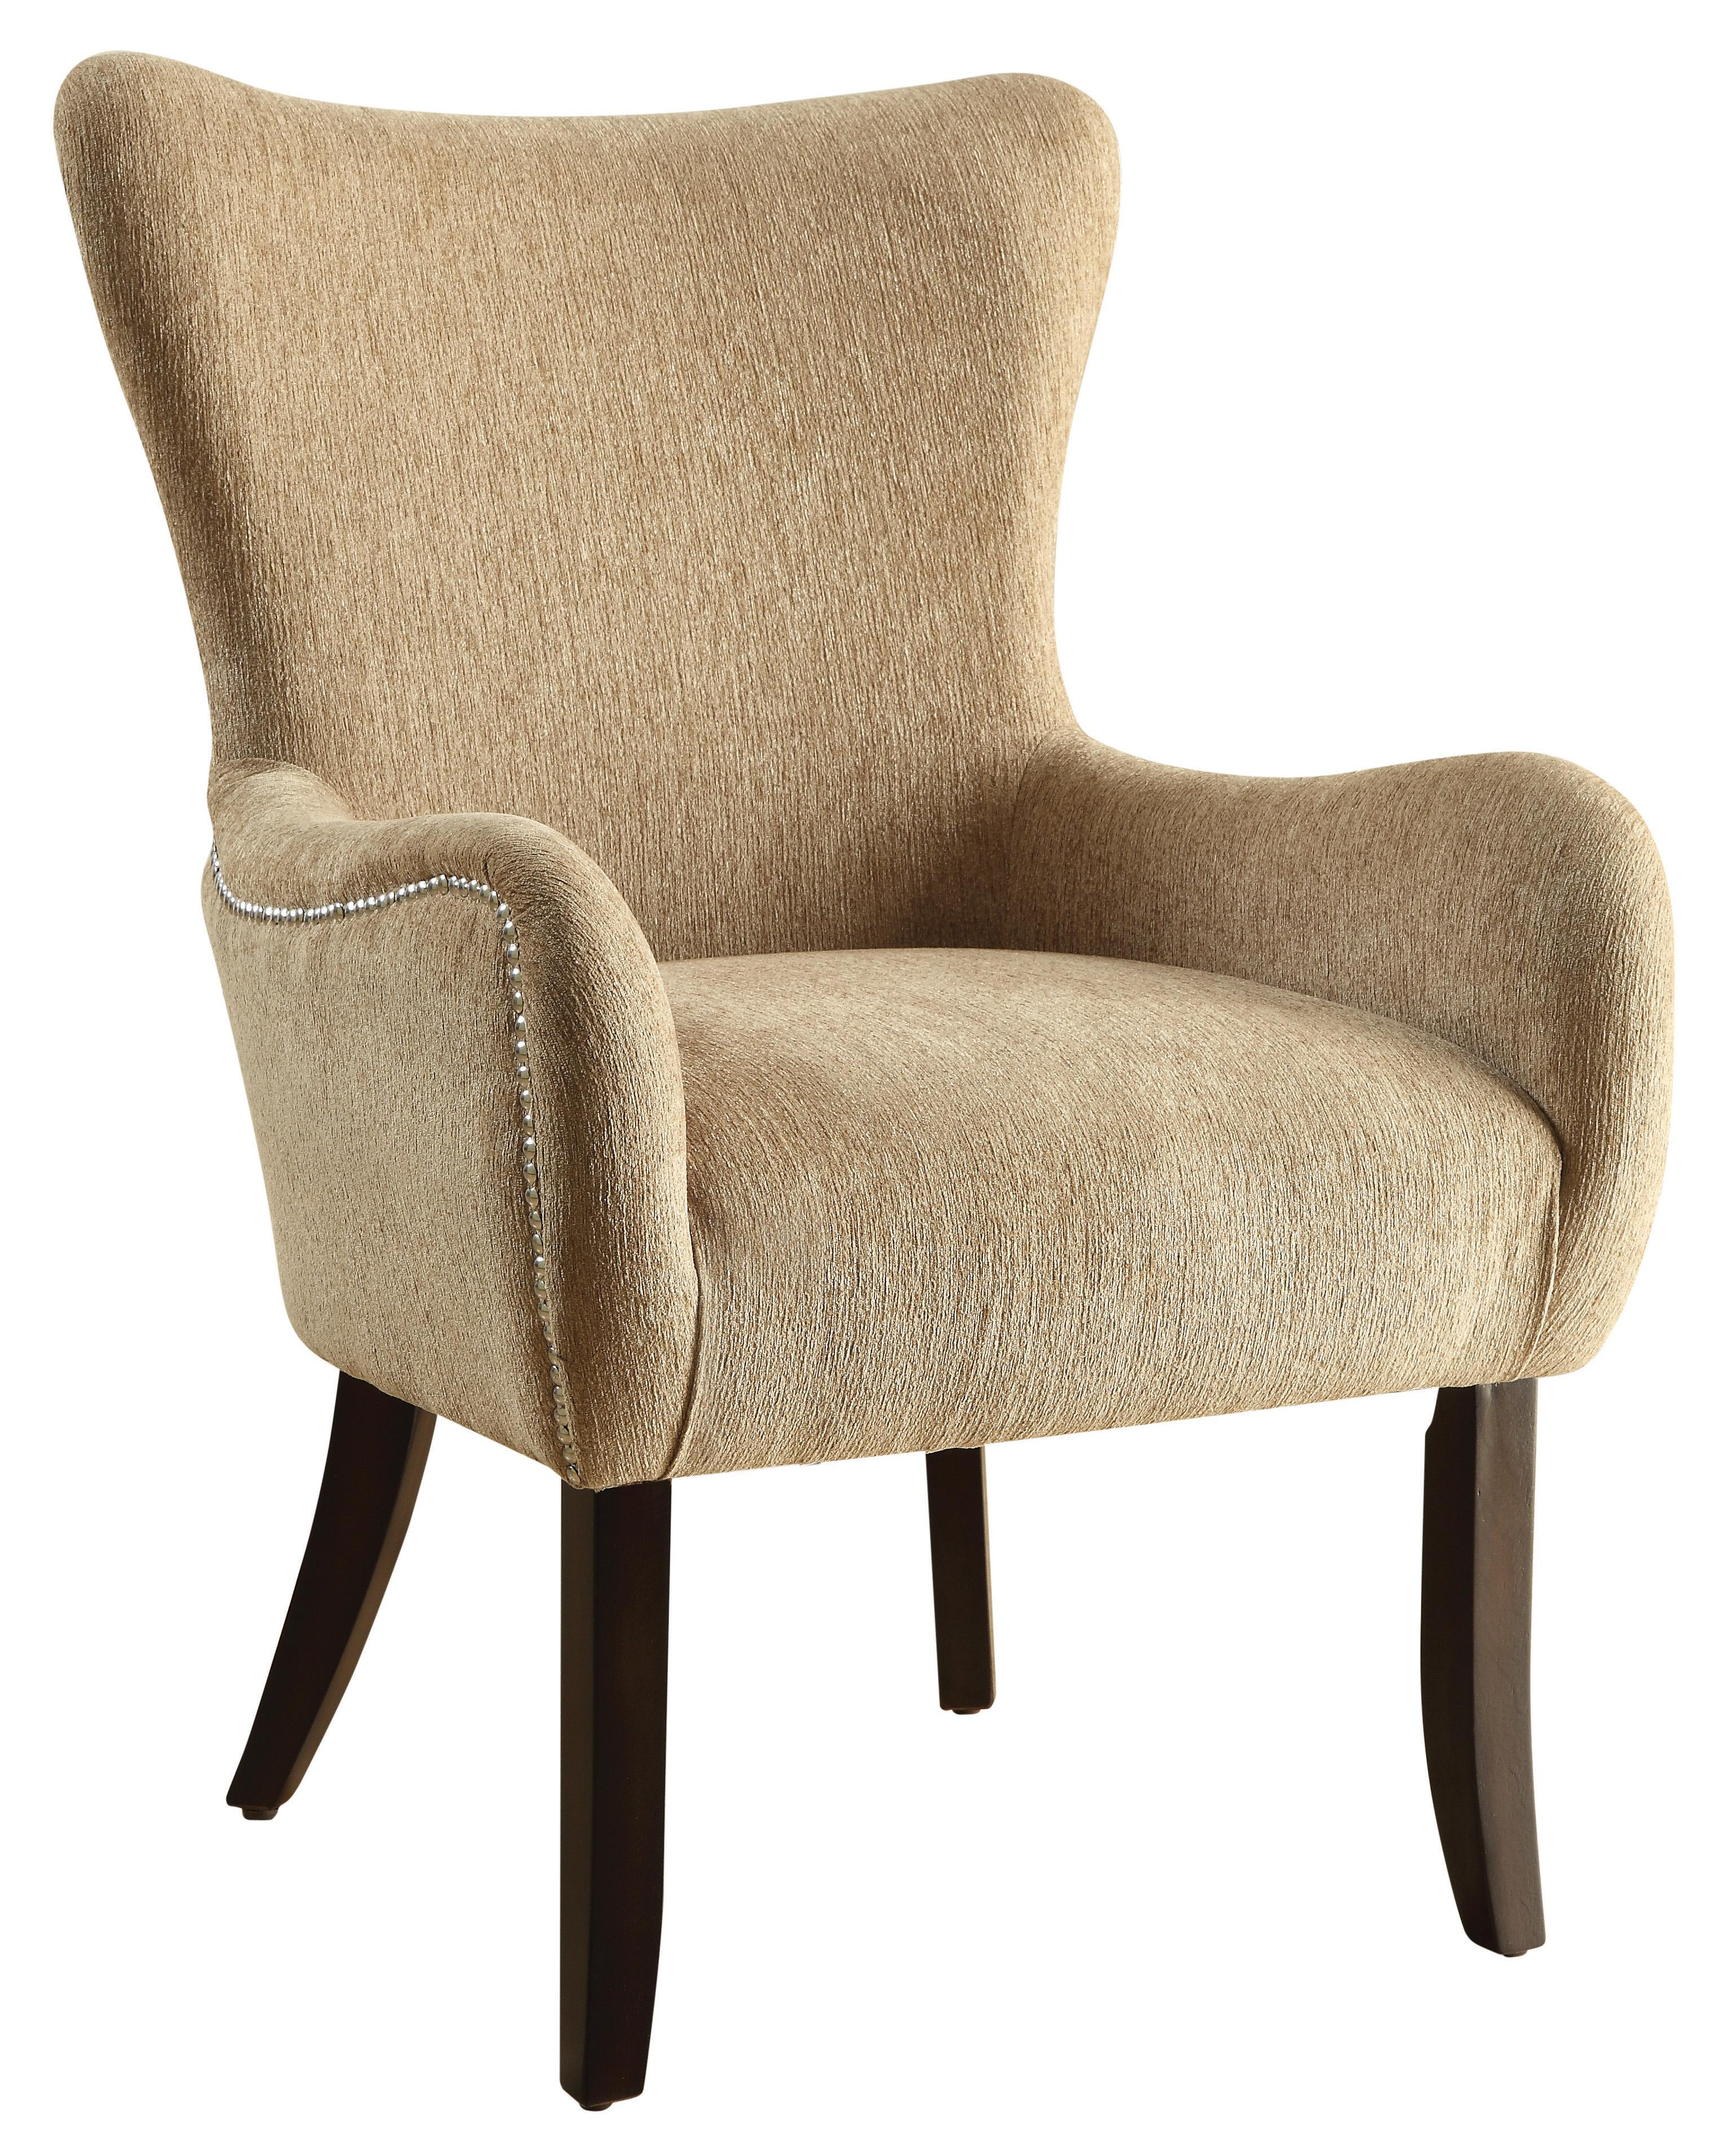 Coaster Accent Seating Accent Chair - Item Number: 902503